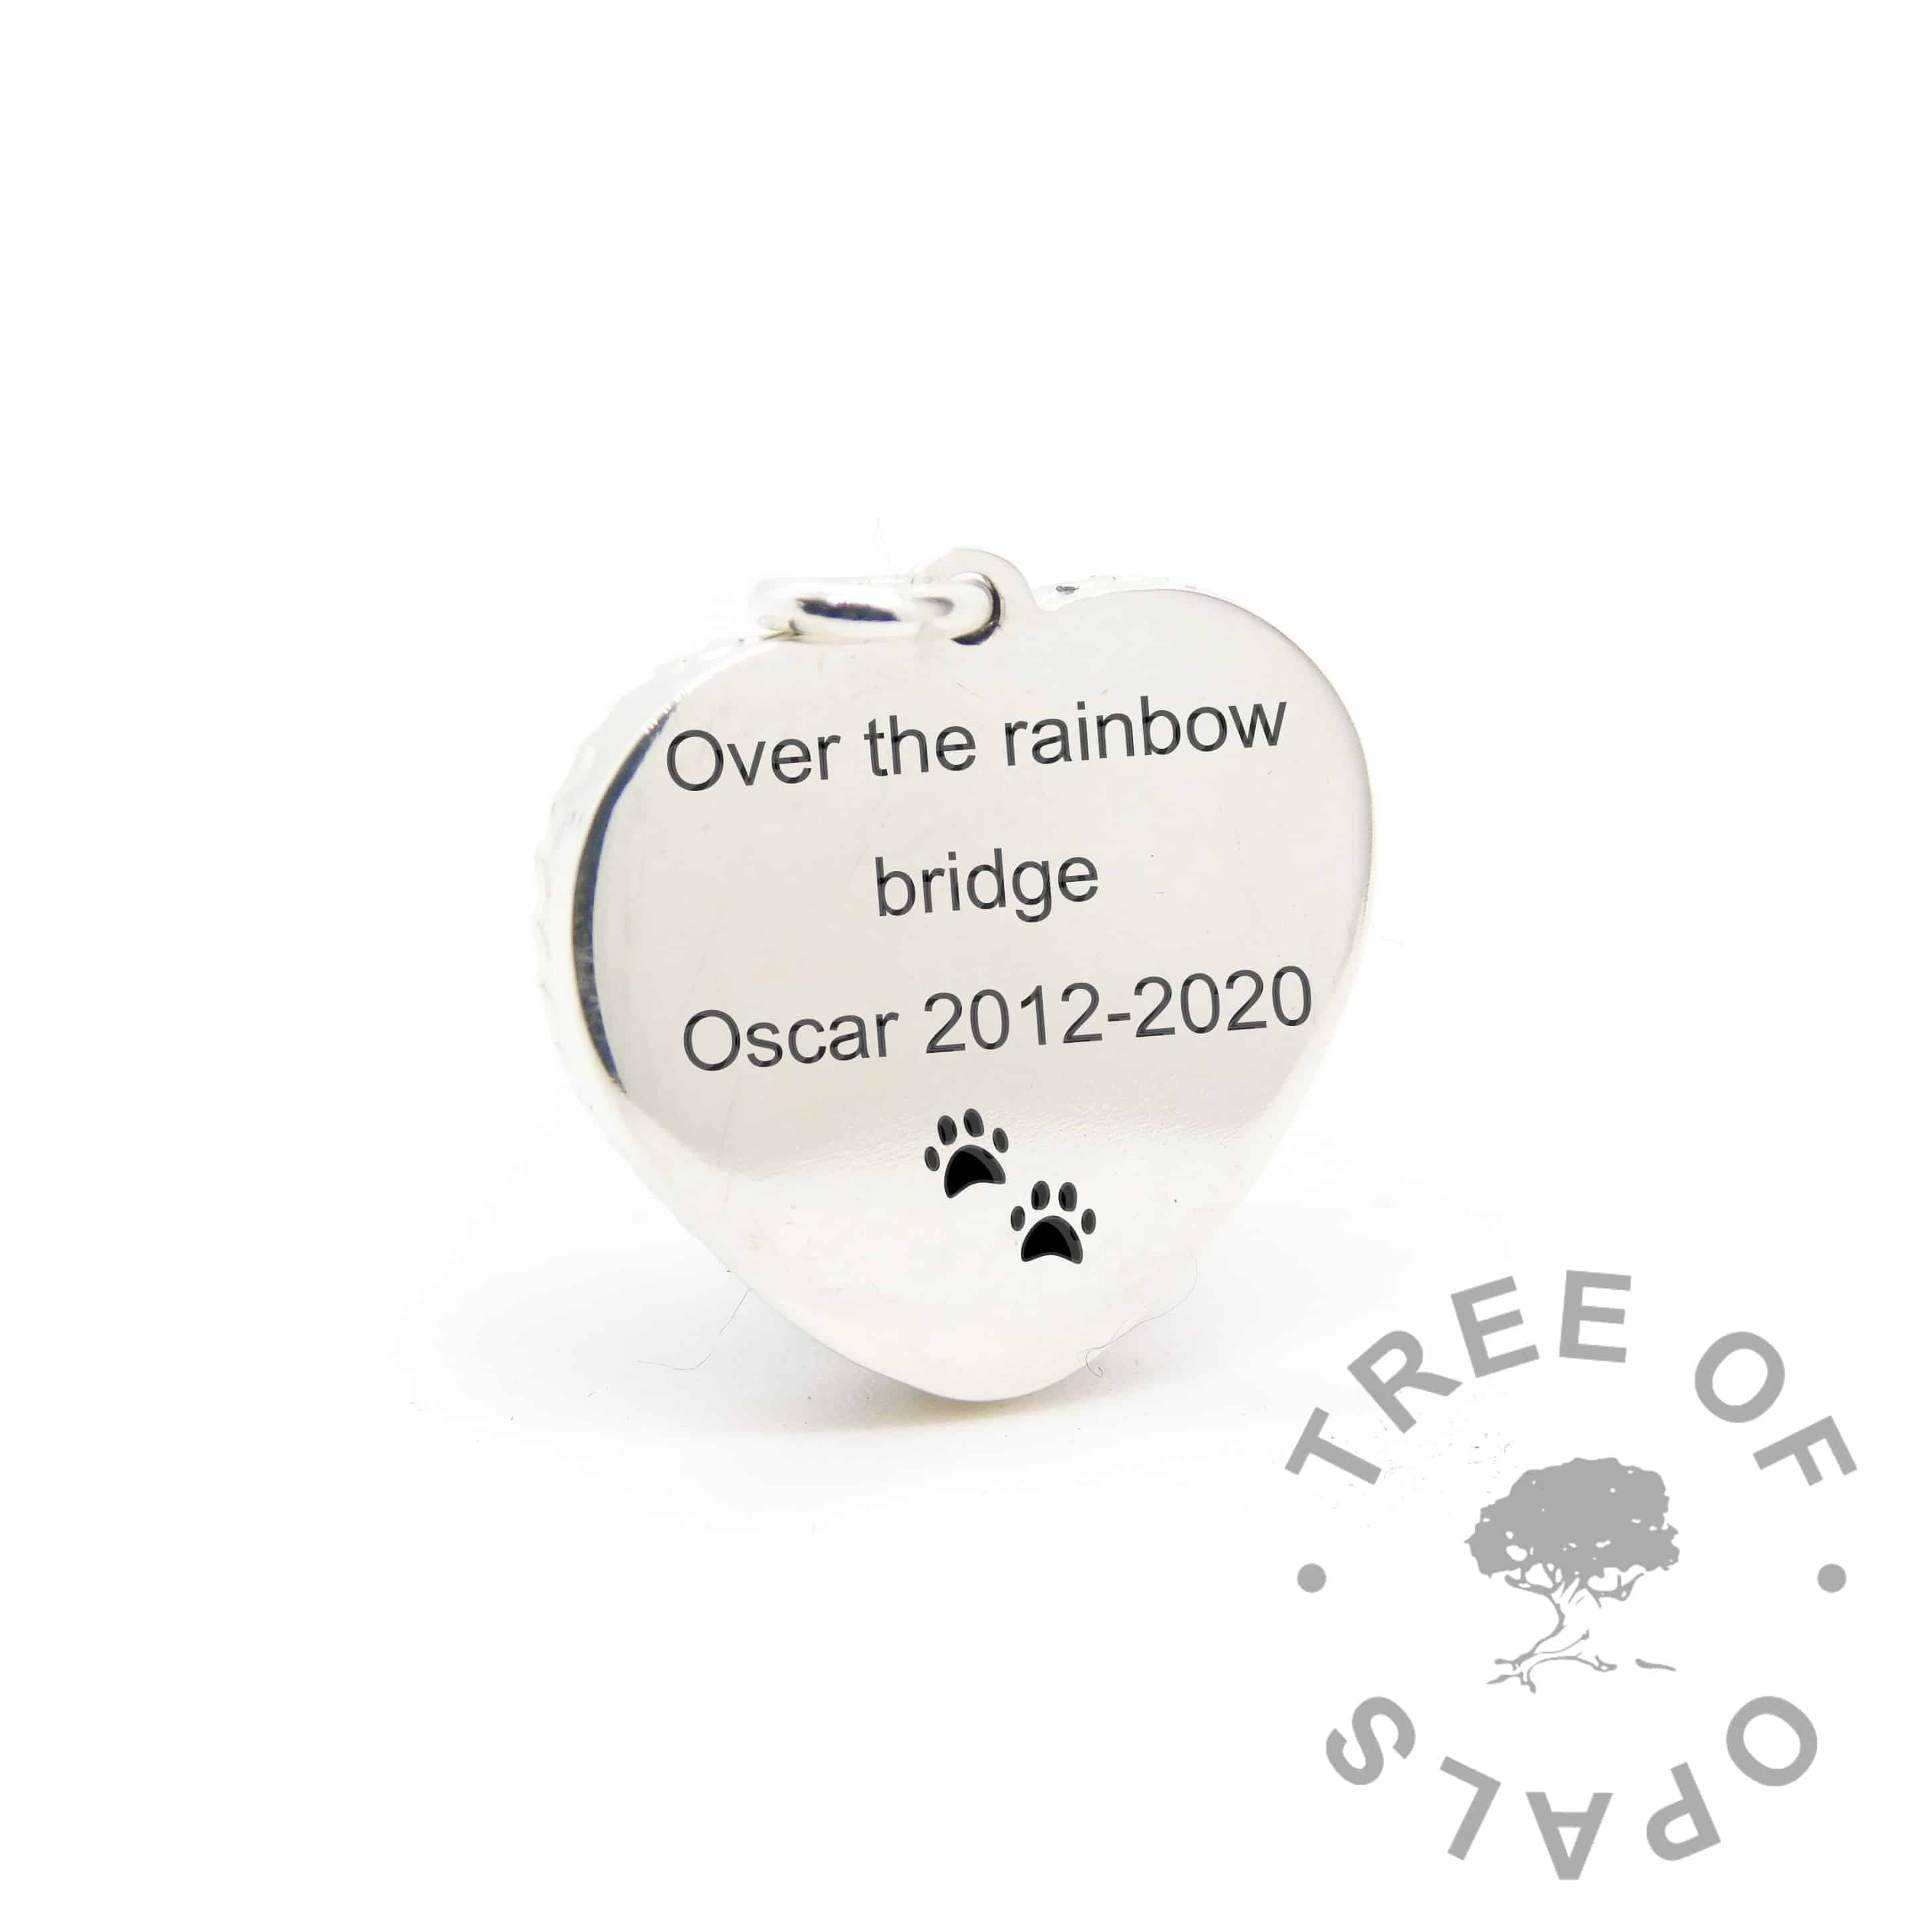 New style heart necklace setting back, with Arial font and paw print emojis engraving mockup (shown without necklace chain)